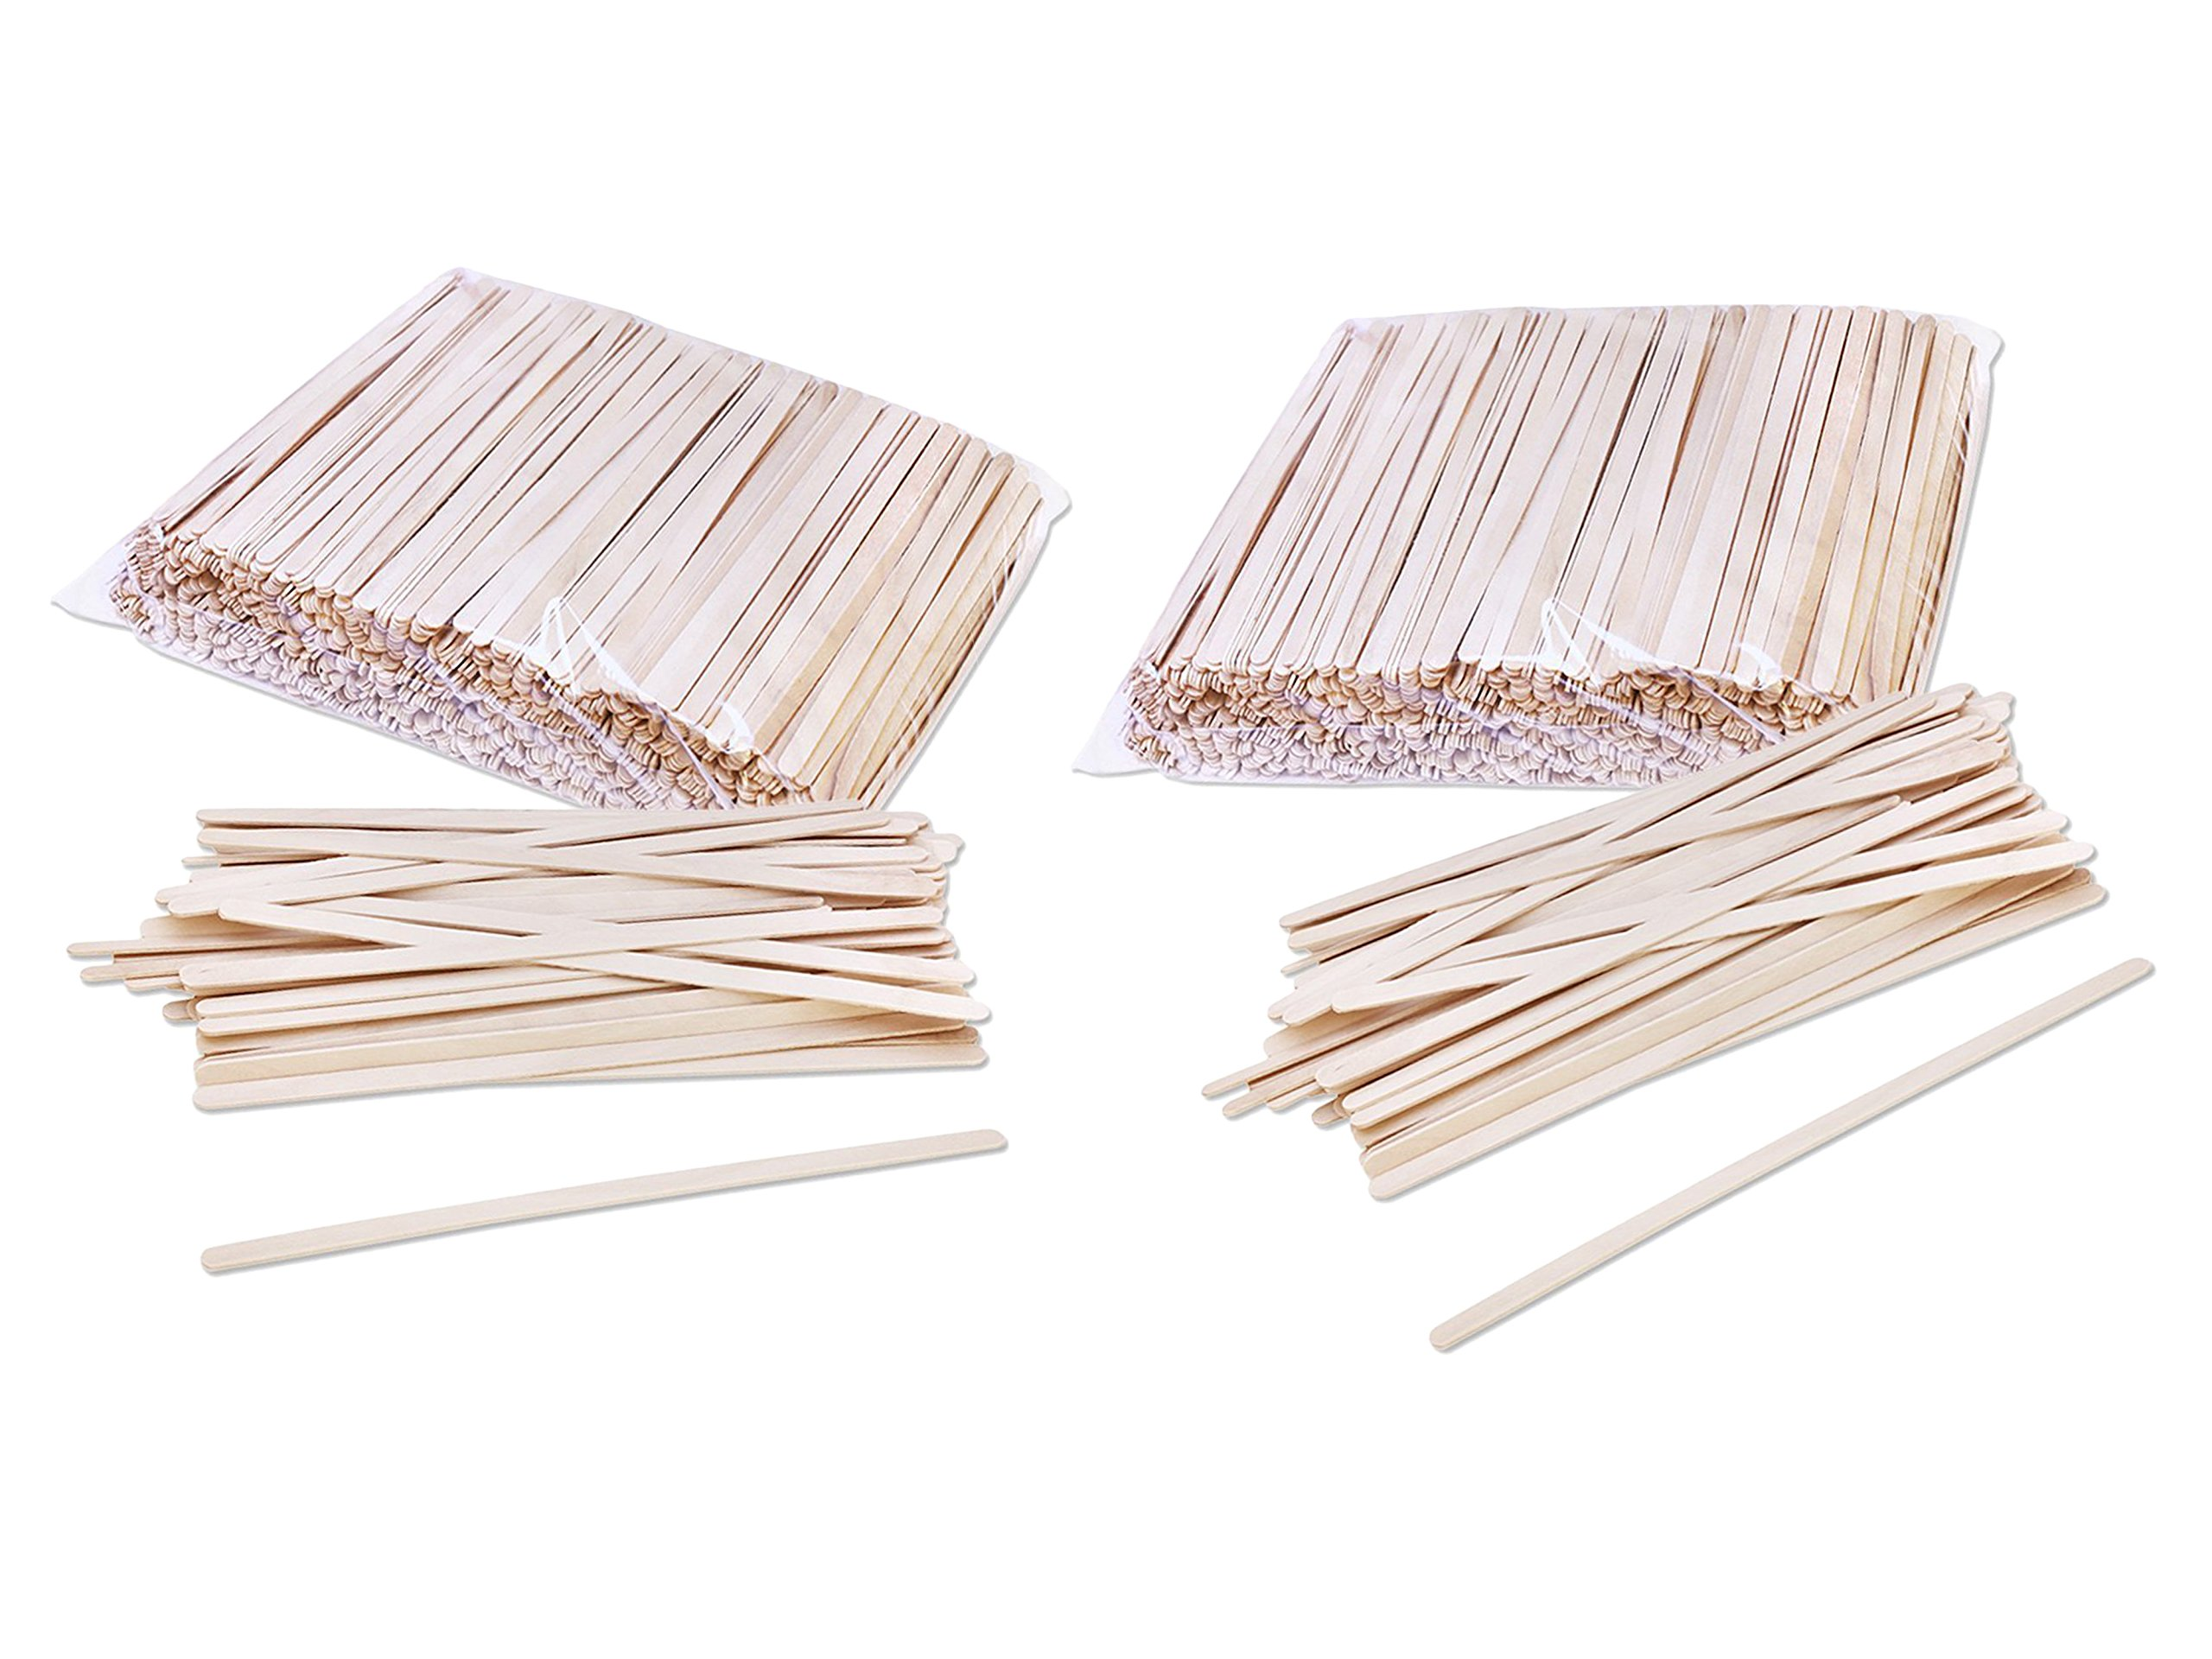 2 Pack of 1000 Solo C-10c Birch Wood 7-Inch Coffee Stirrers bundled by Maven Gifts